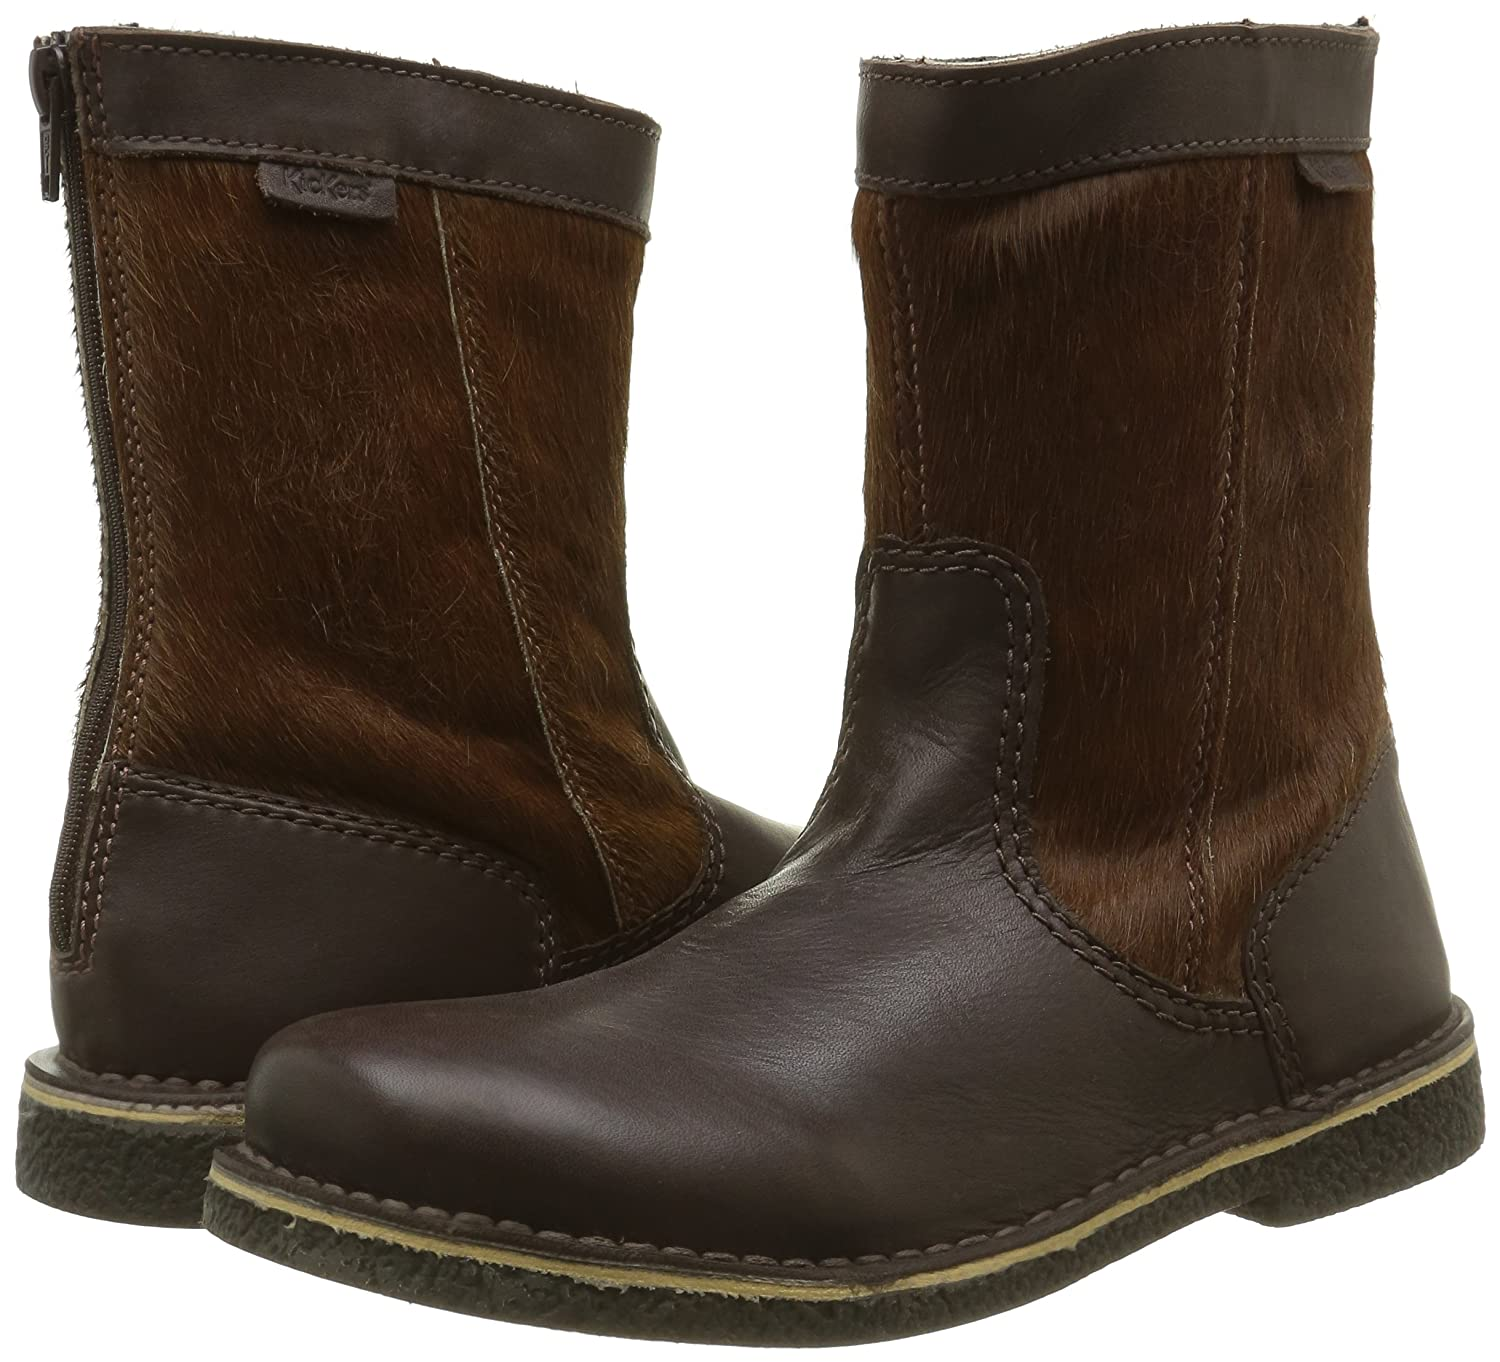 FemmeN Kickers LexyBottes Classiques LexyBottes Kickers DI9EH2WYe